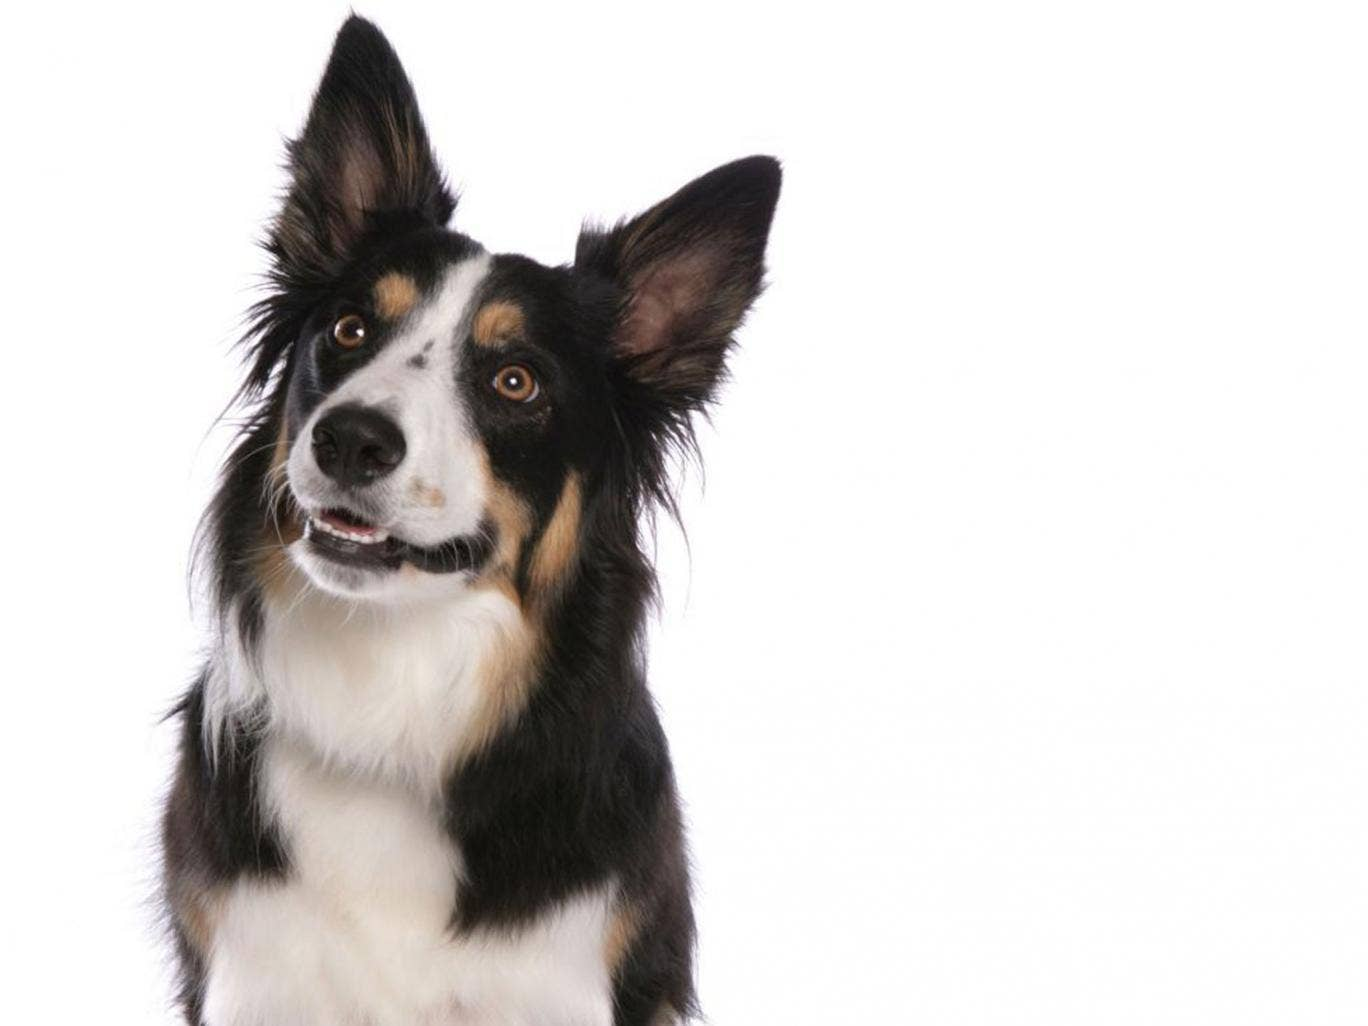 Chaser the black and white sheepdog has learnt and remembered more than 1,000 proper nouns